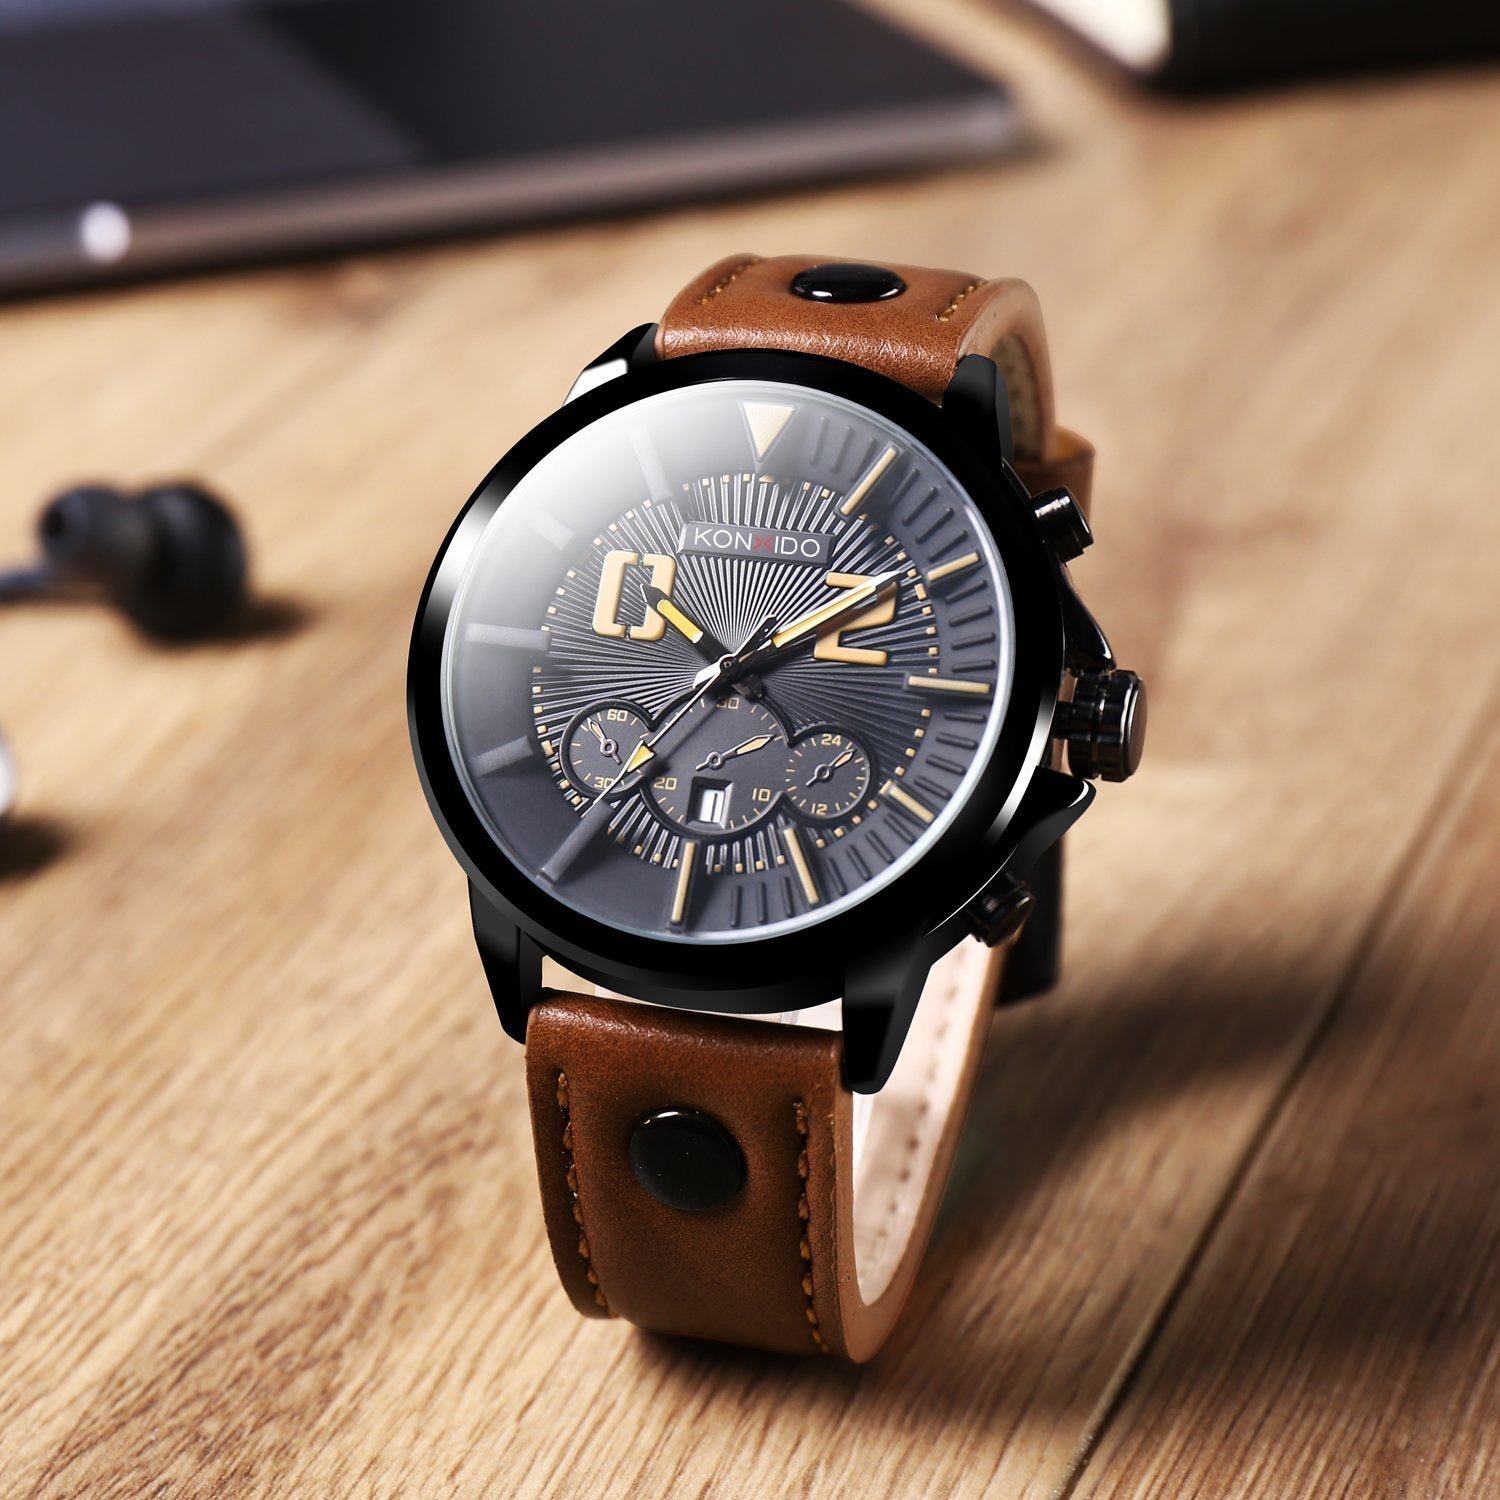 strap waterproof com mechanical chronograph from aliexpress group in gentleman band on business leather alibaba casual watches wrist item